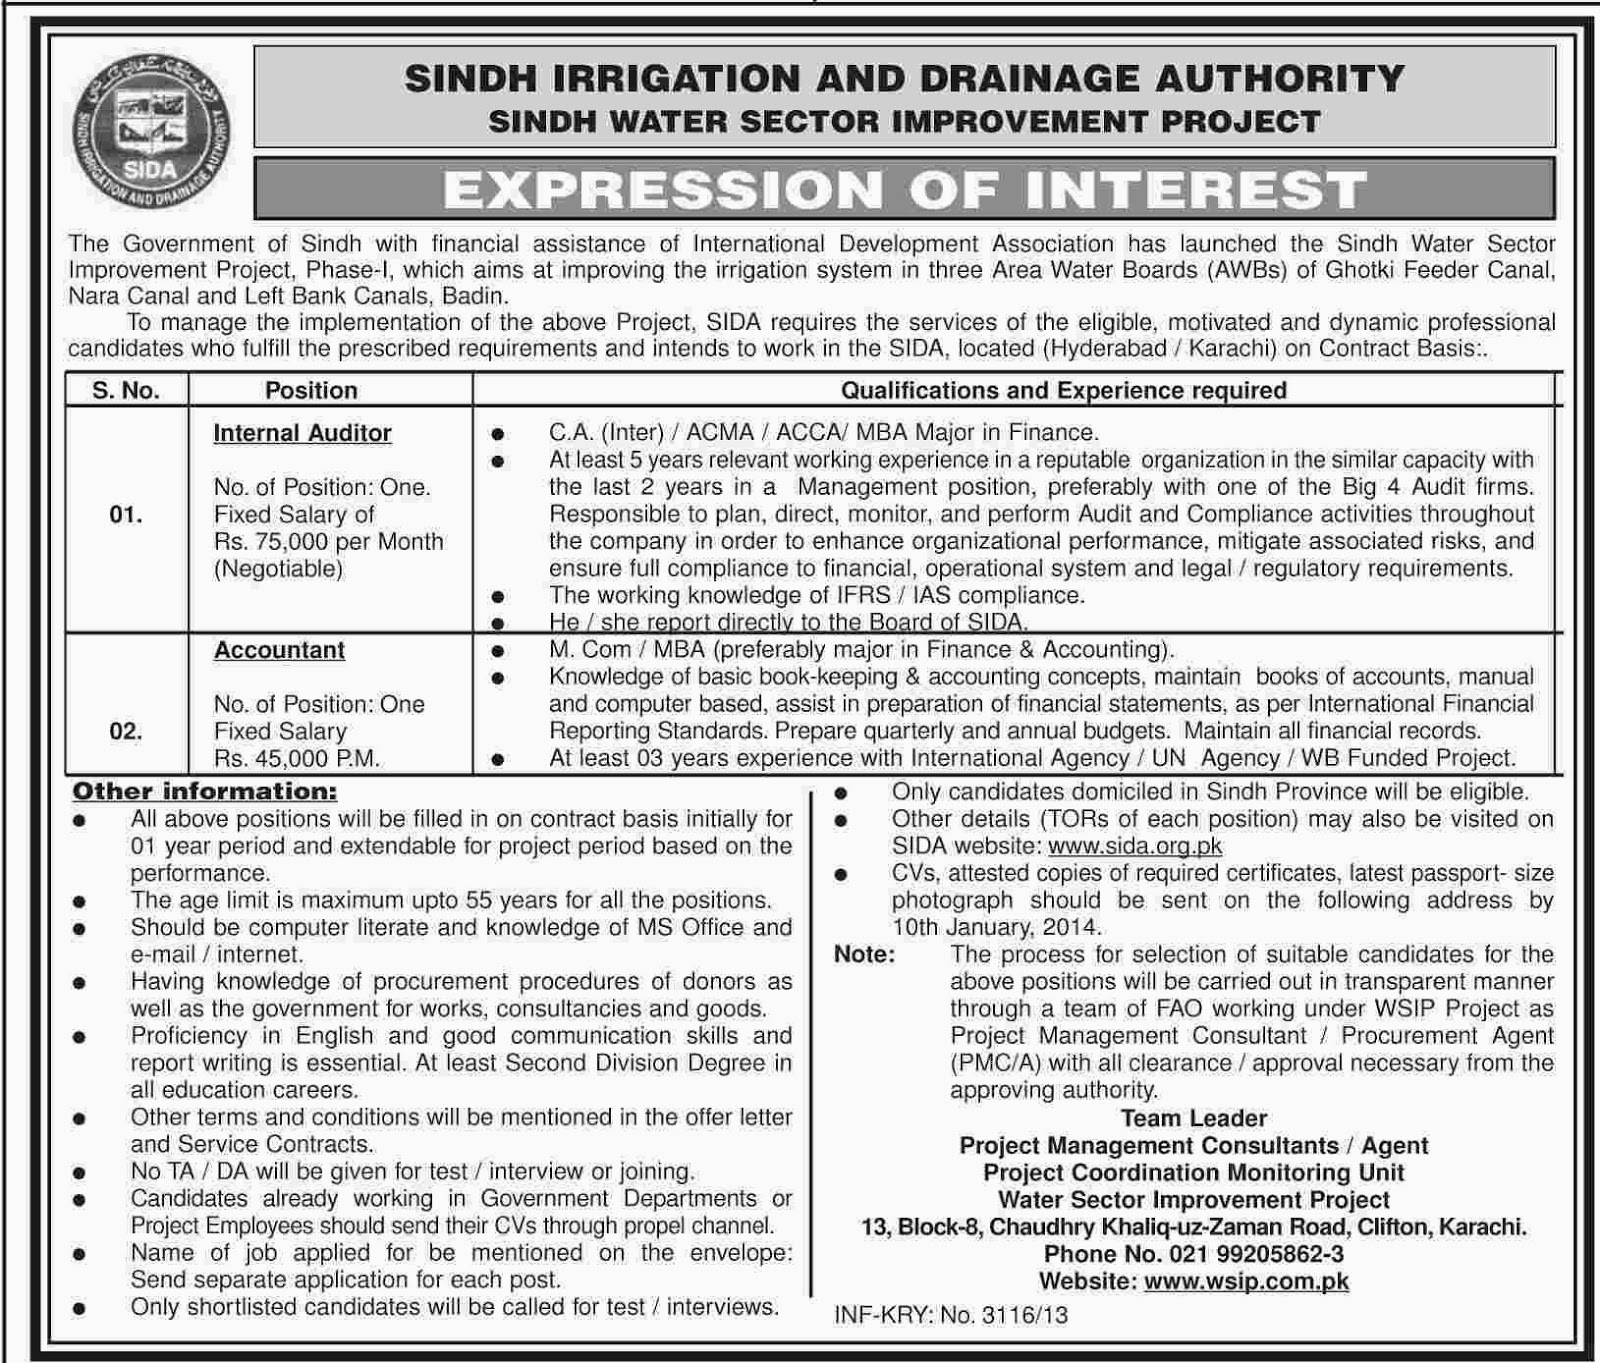 Auditor and Accountant Jobs in Sindh Irrigation & Drainage Authority, Karachi